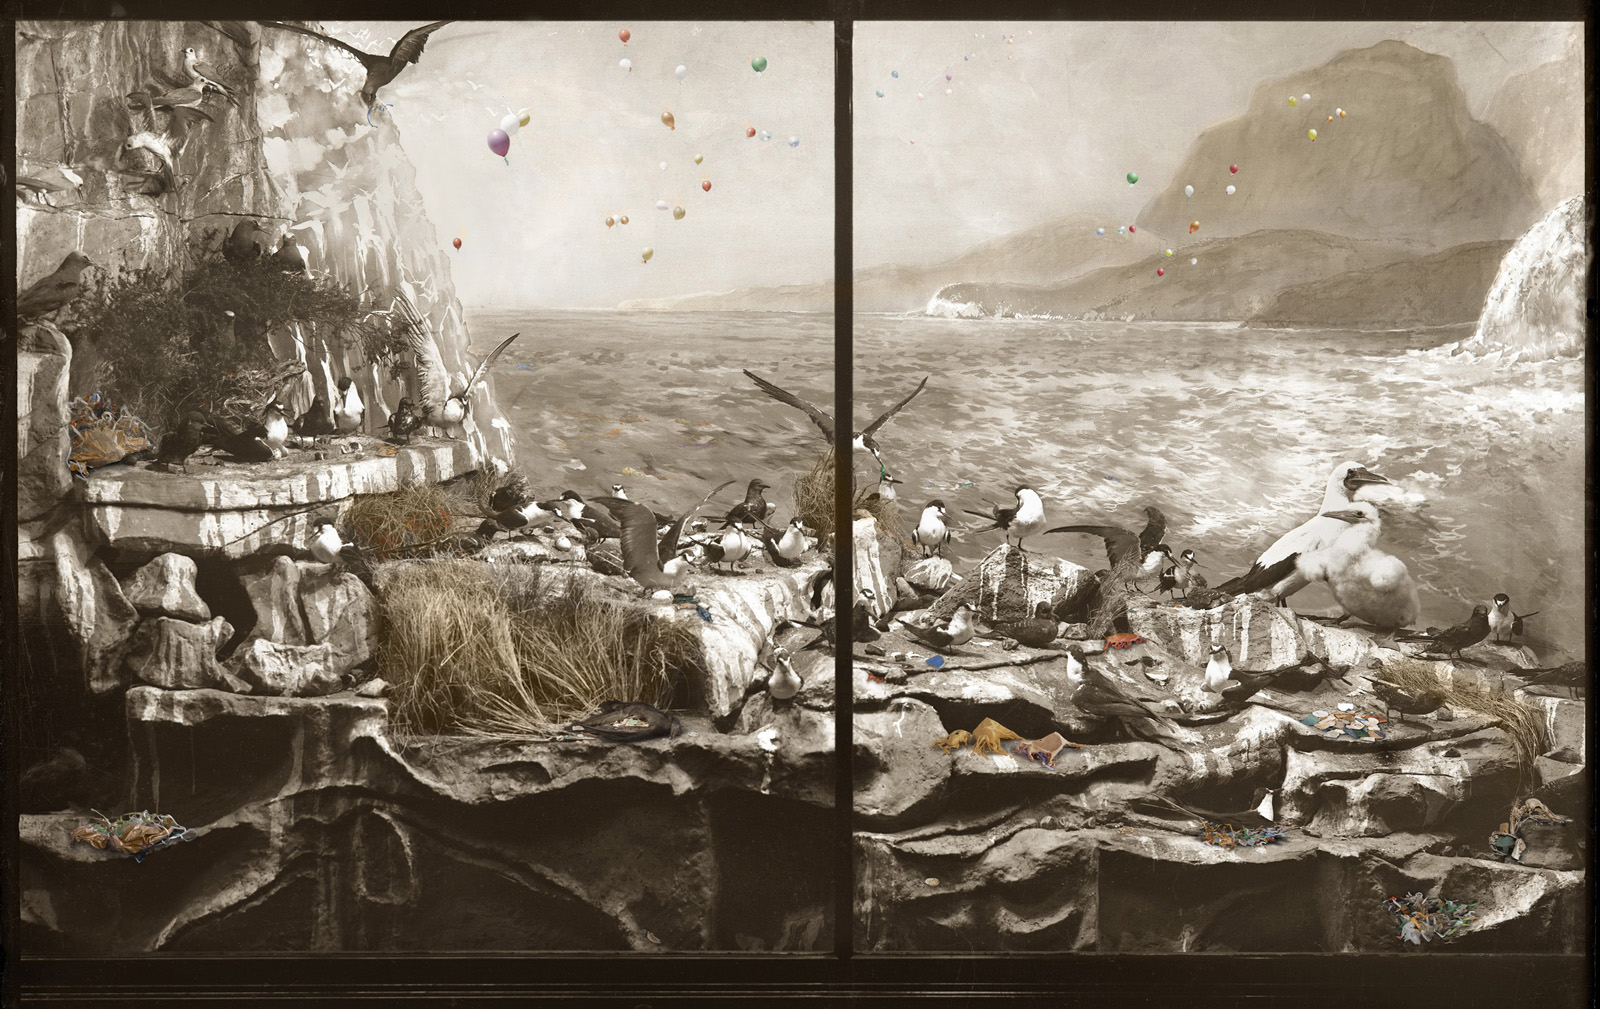 ANNE ZAHALKA    Sea Bird Colony, Admiralty Rocks with turbulent seas, Lord Howe Island   2019 archival pigment ink on rag paper  80 x 126 cm Edition of 6  Source: Australian Museum